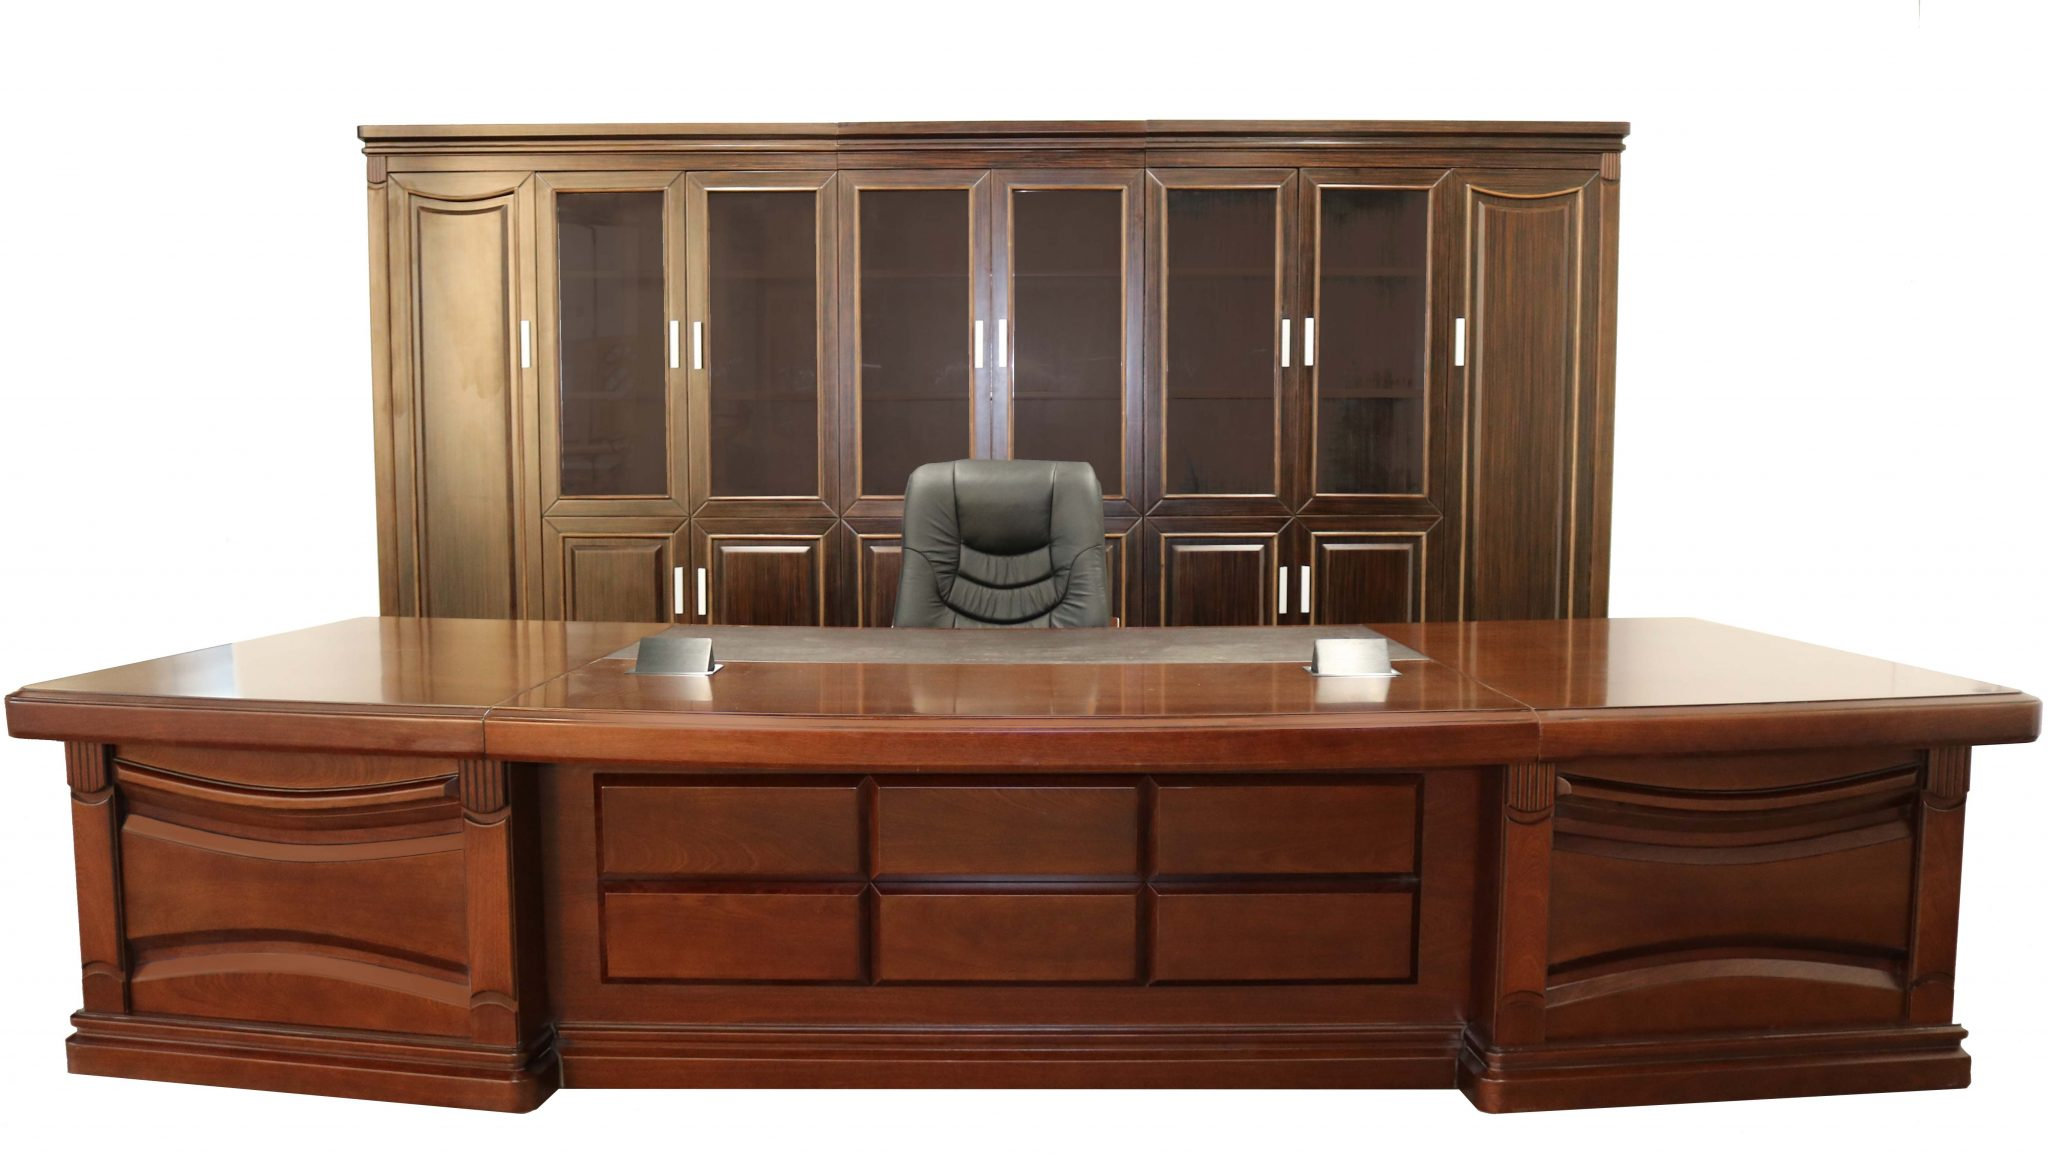 Office Furniture: HighGate Executive Office Furniture Suite